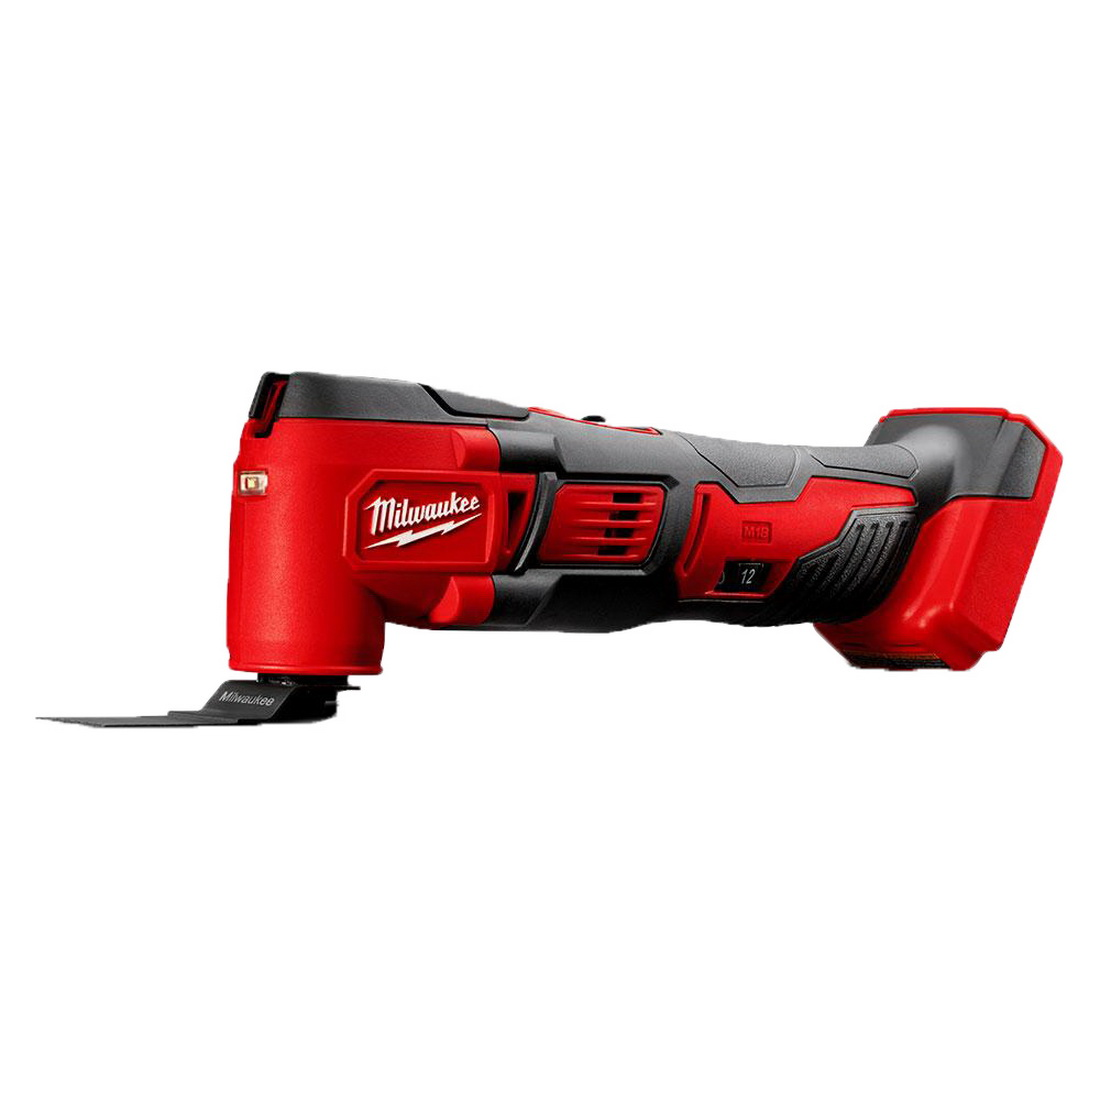 M18 Cordless Multi-Tool (Tool Only)